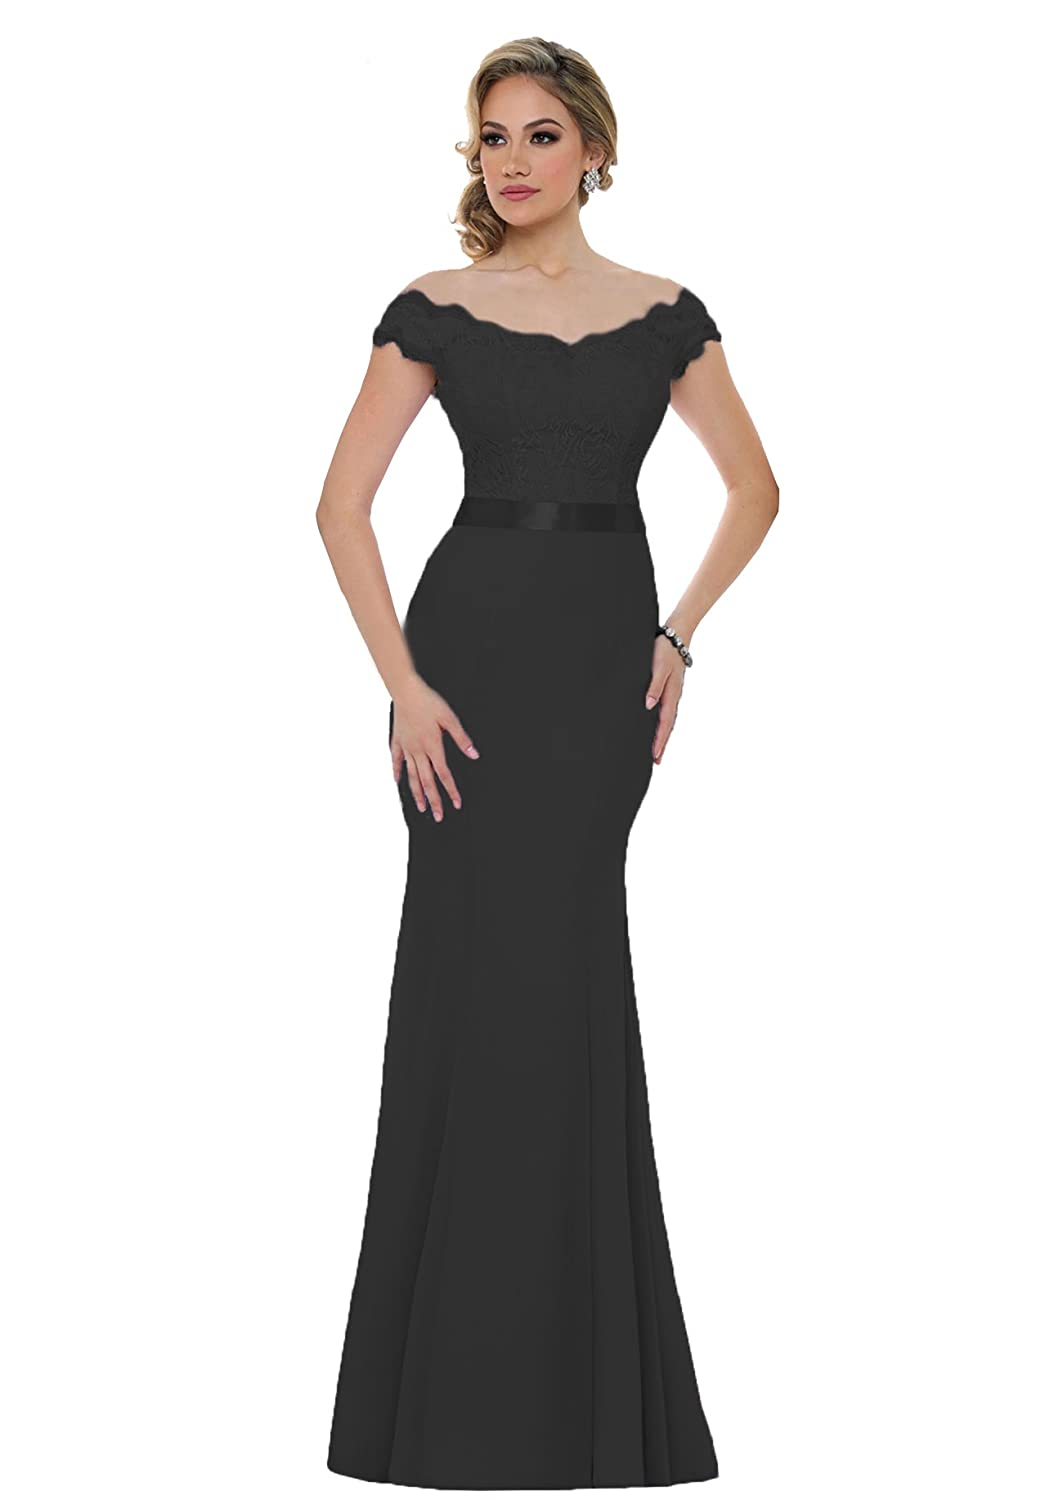 e768d153c8 Beauty Bridal V-Neck Off Shoulder Mermaid Bridesmaid Dresses Long Prom Gown  2018 S015 at Amazon Women s Clothing store